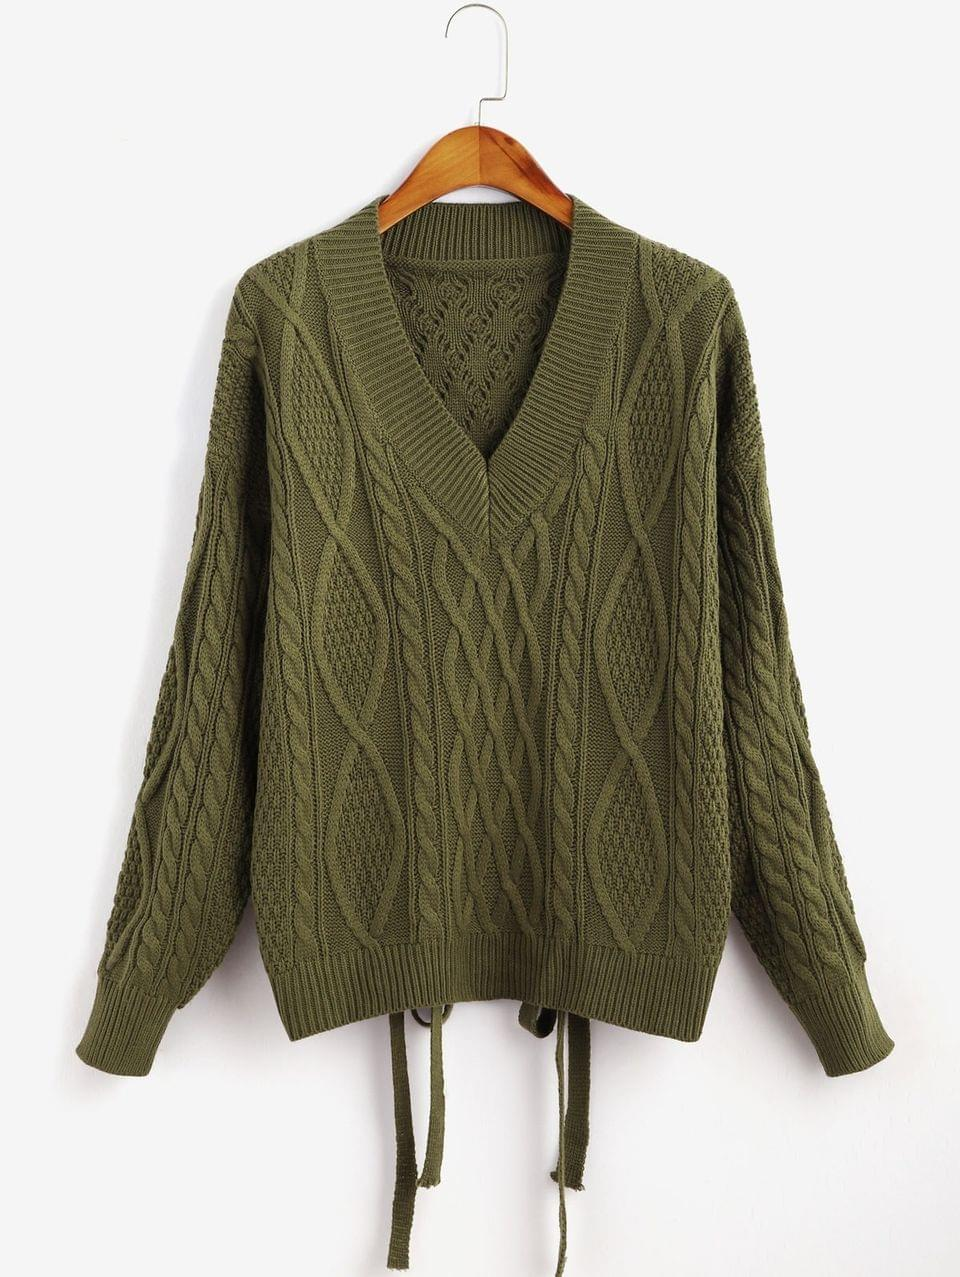 Women's Cut Out Cable Knit Tied Sweater - Army Green